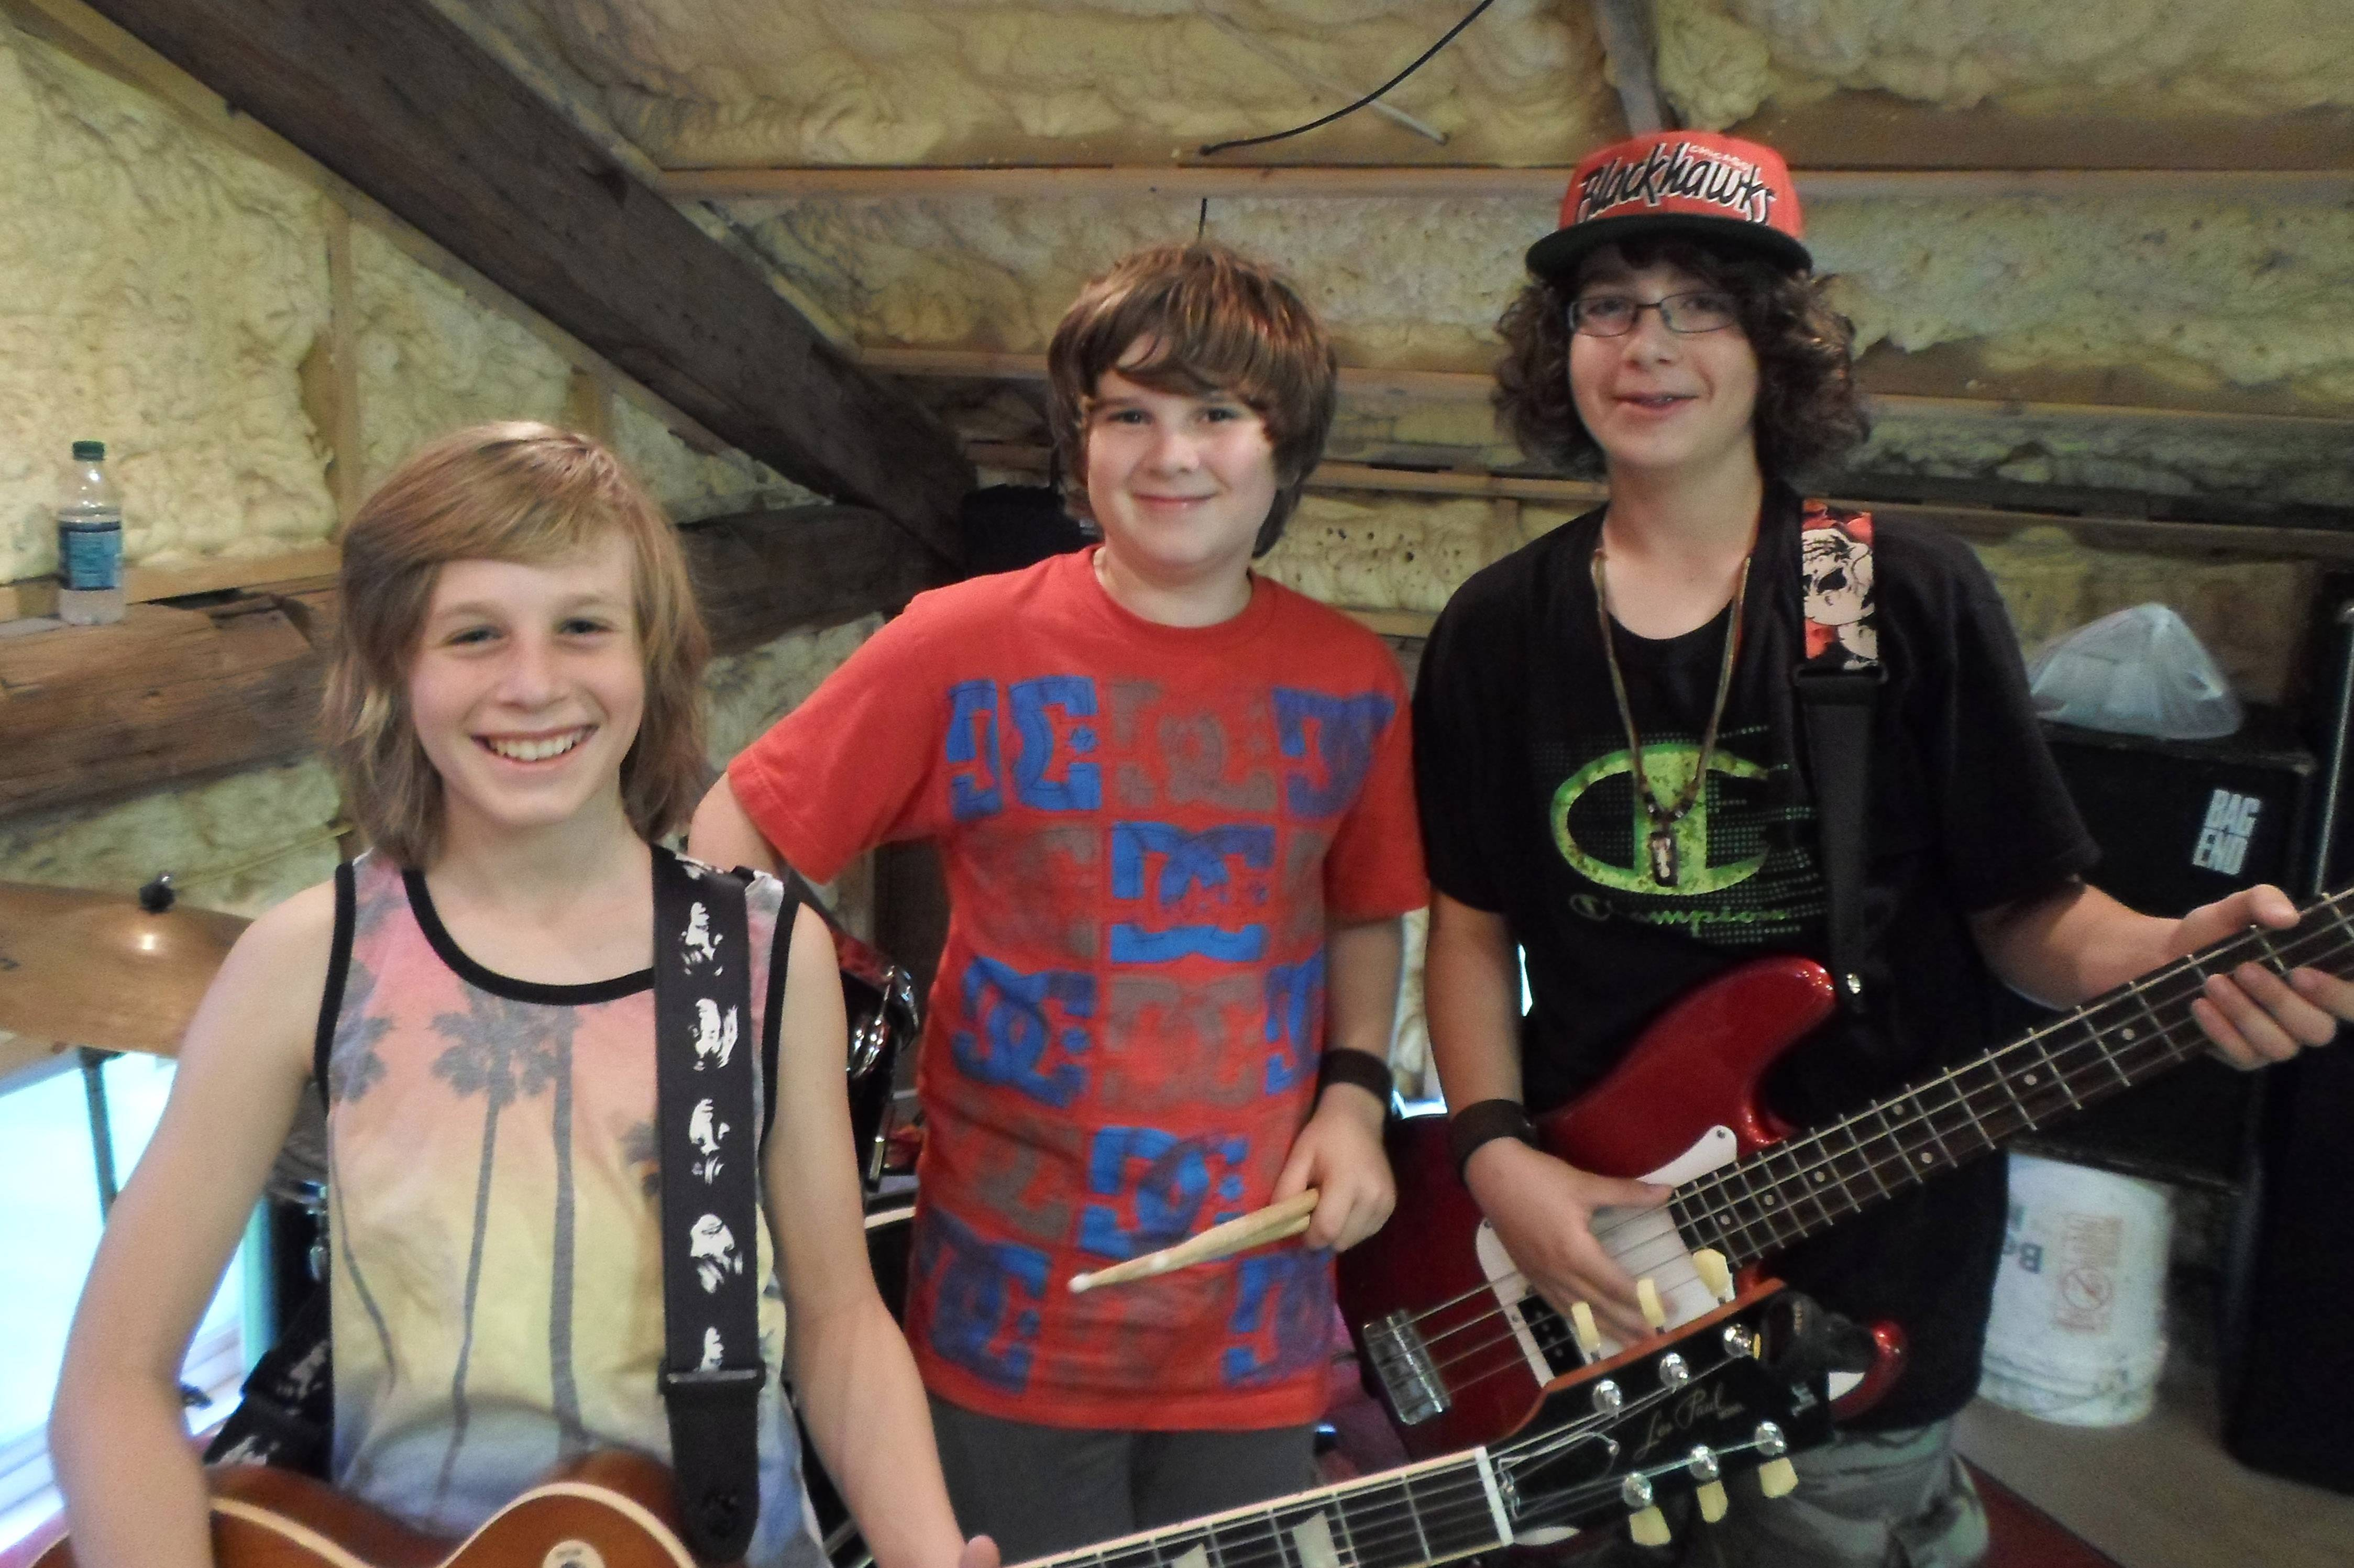 US band members from Axel Ellis, left, Rhys Junas and Ryan Zurick.